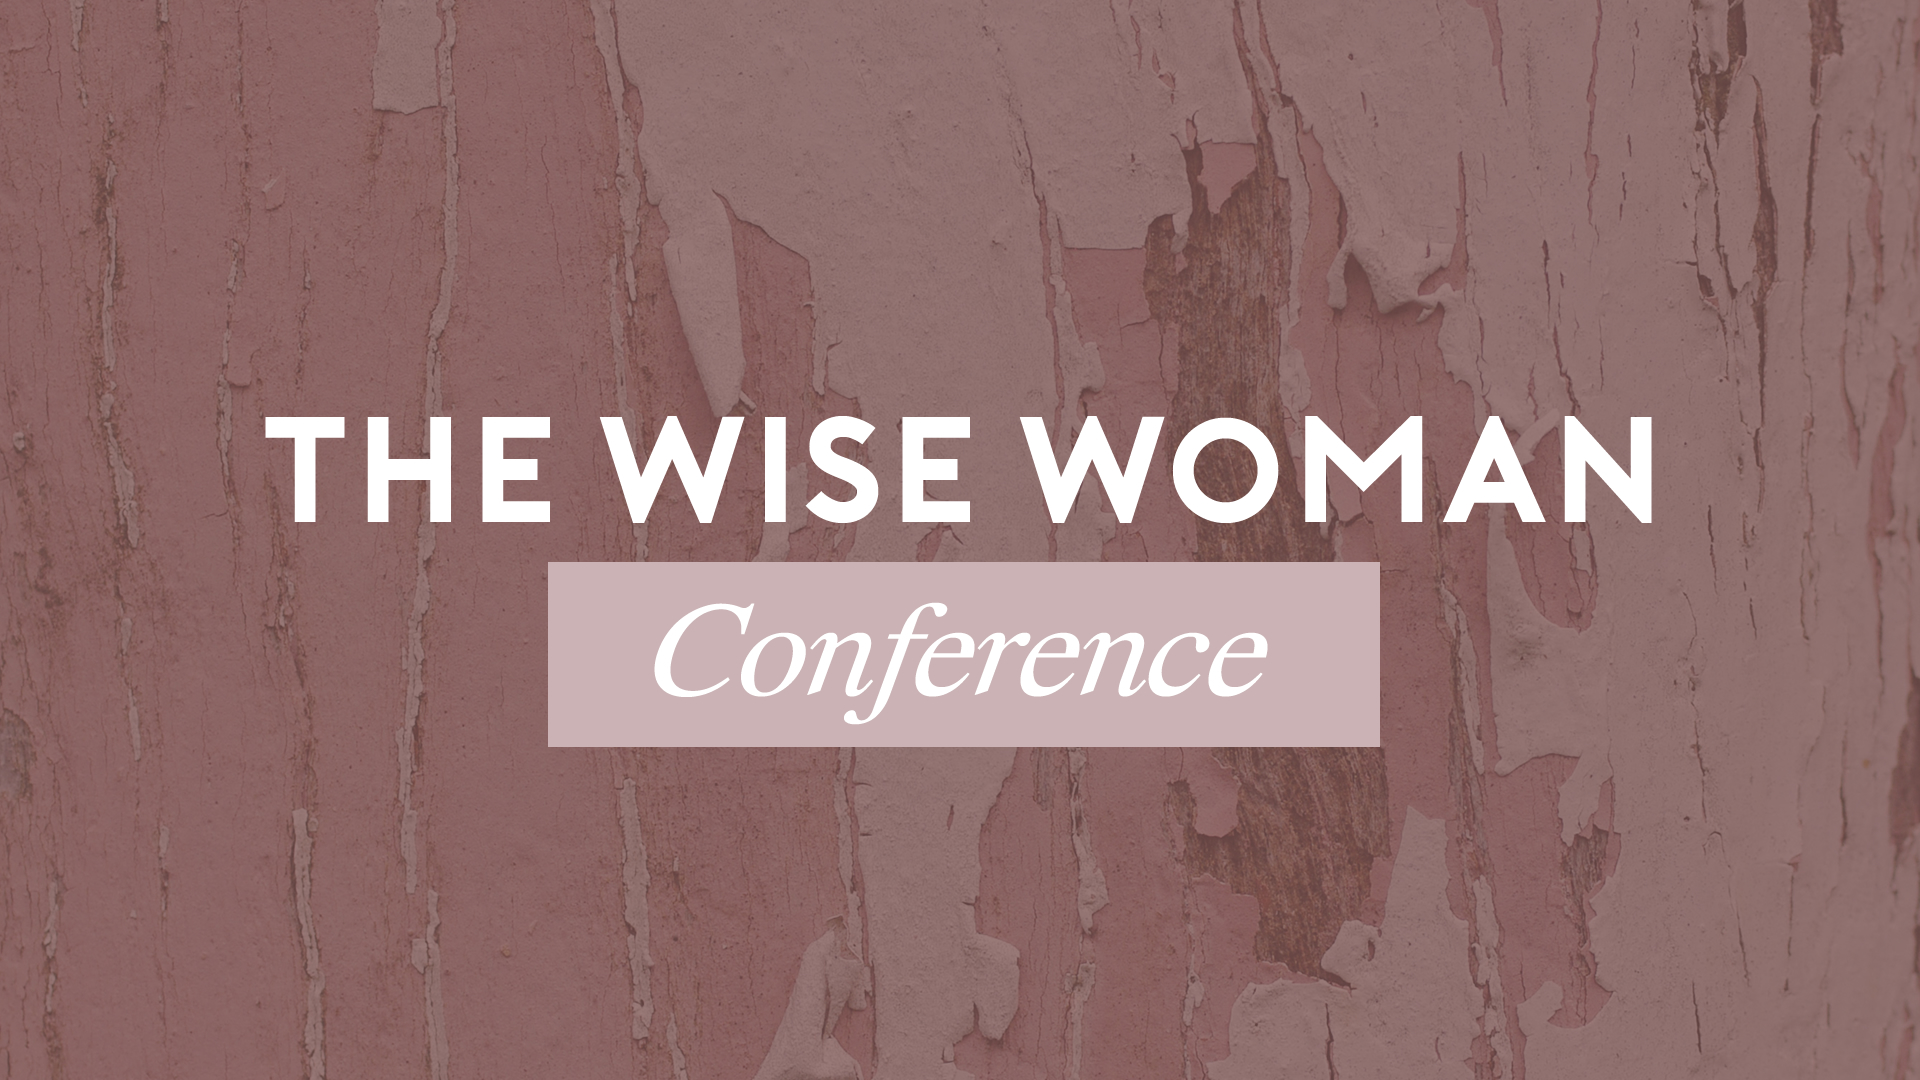 Wise Woman Conference.jpg